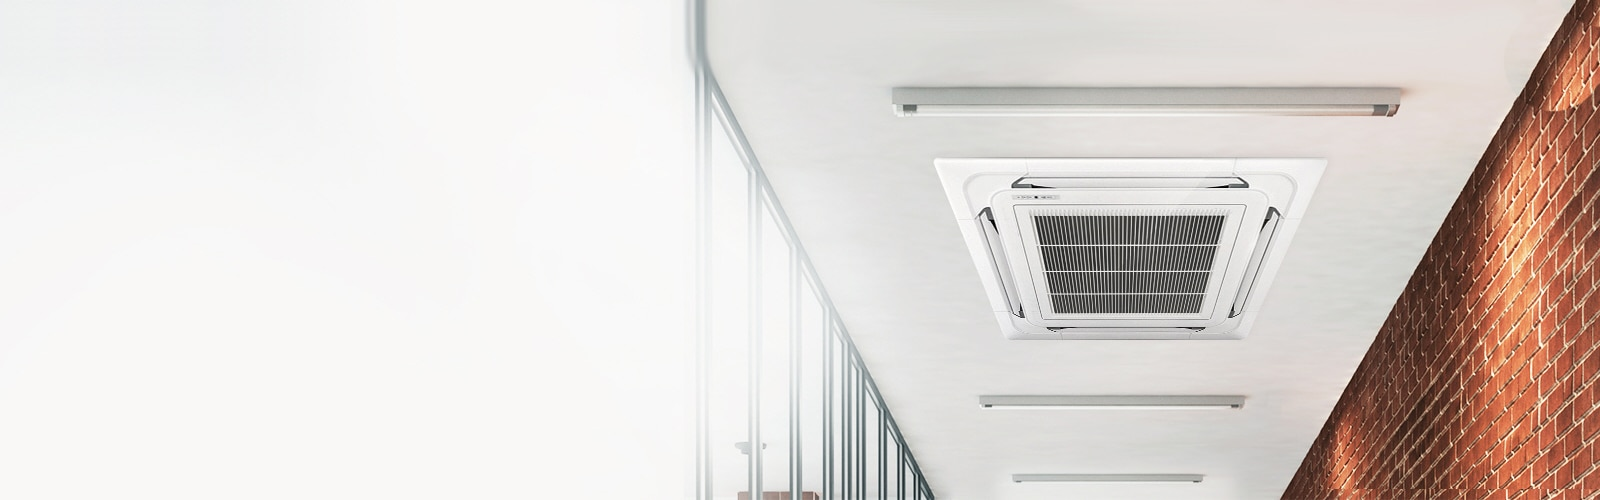 Ceiling Cette Type Air Conditioners Installation